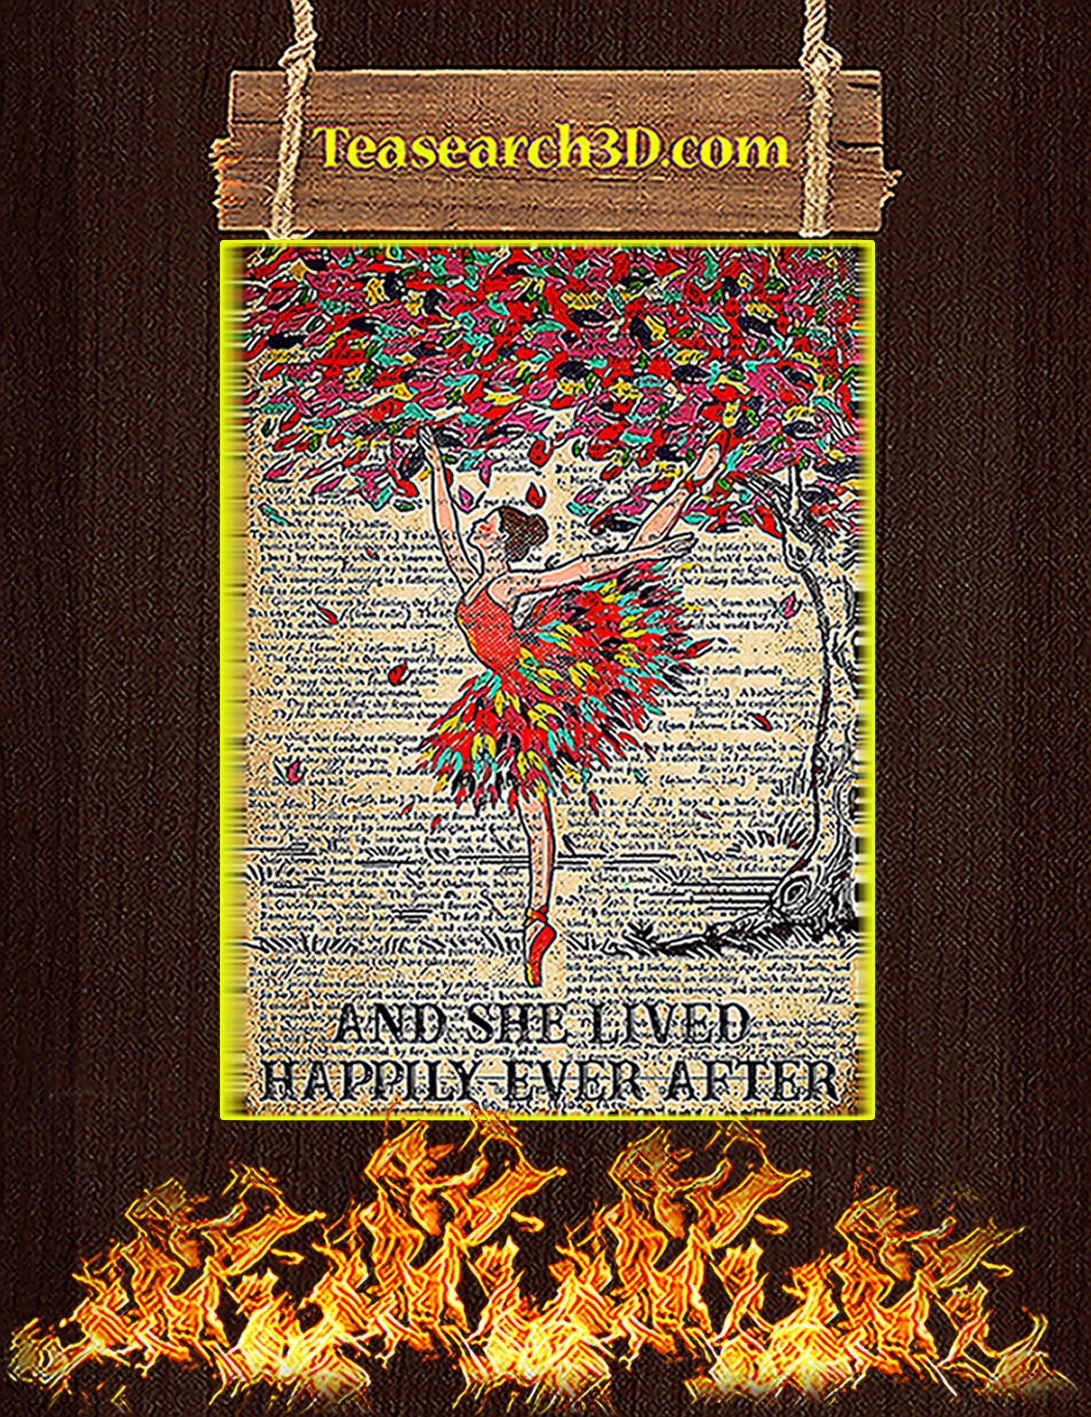 Ballet And she lived happily ever after poster A2